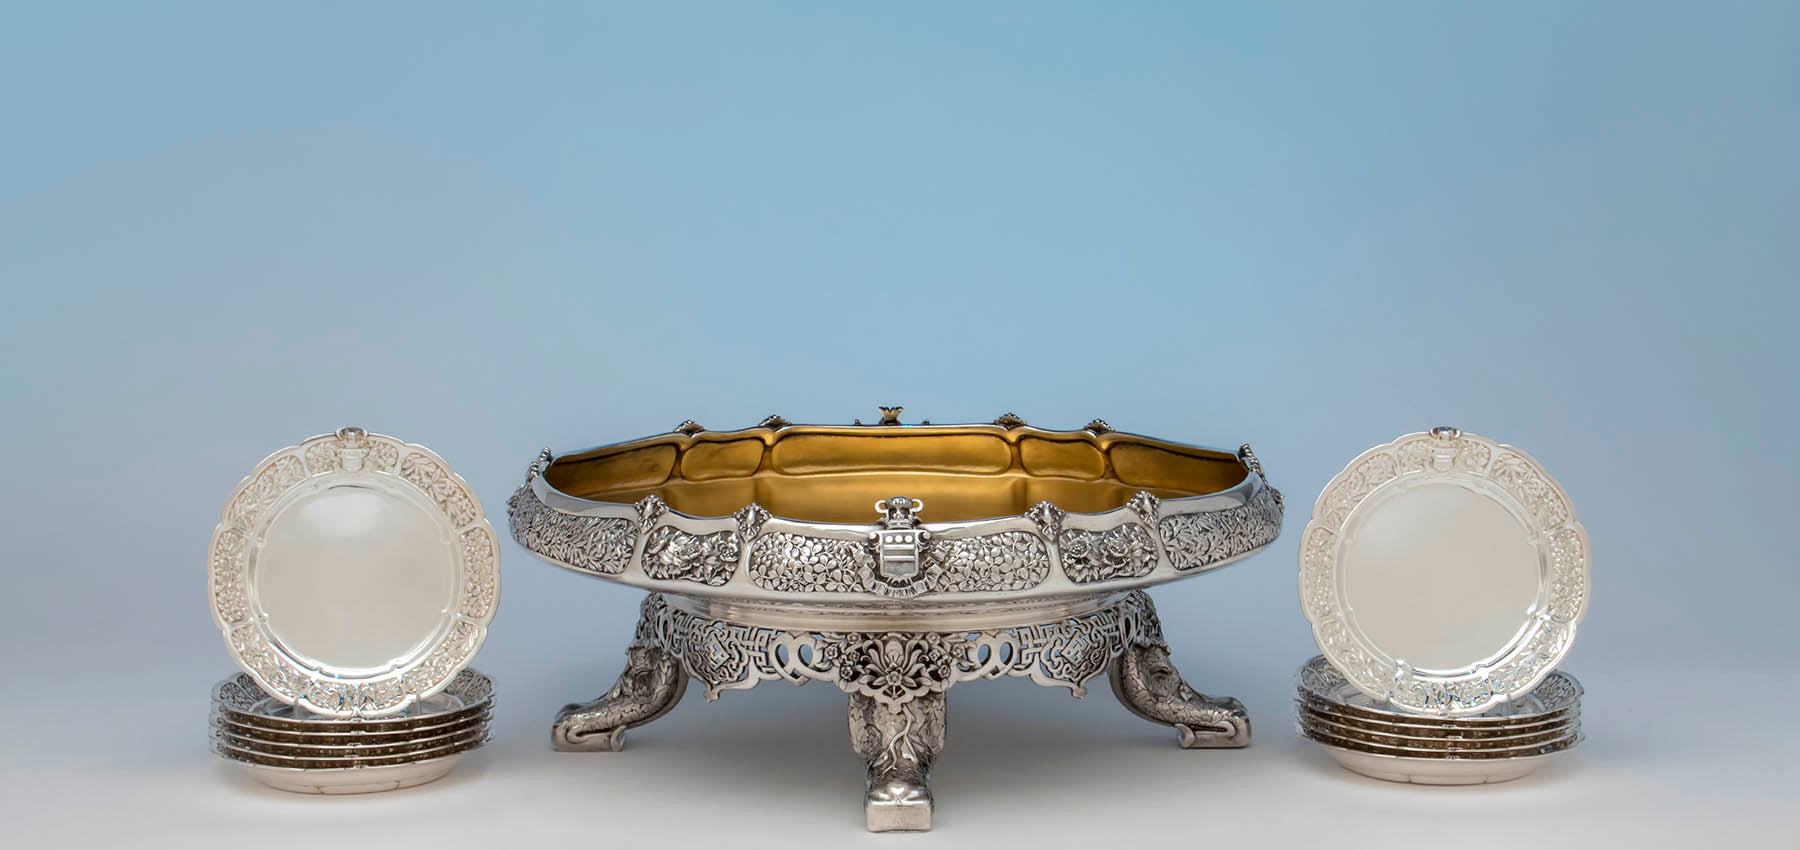 The Mackay Service, </br> Tiffany & Co.'s Greatest Dinner Service </br></br></br>